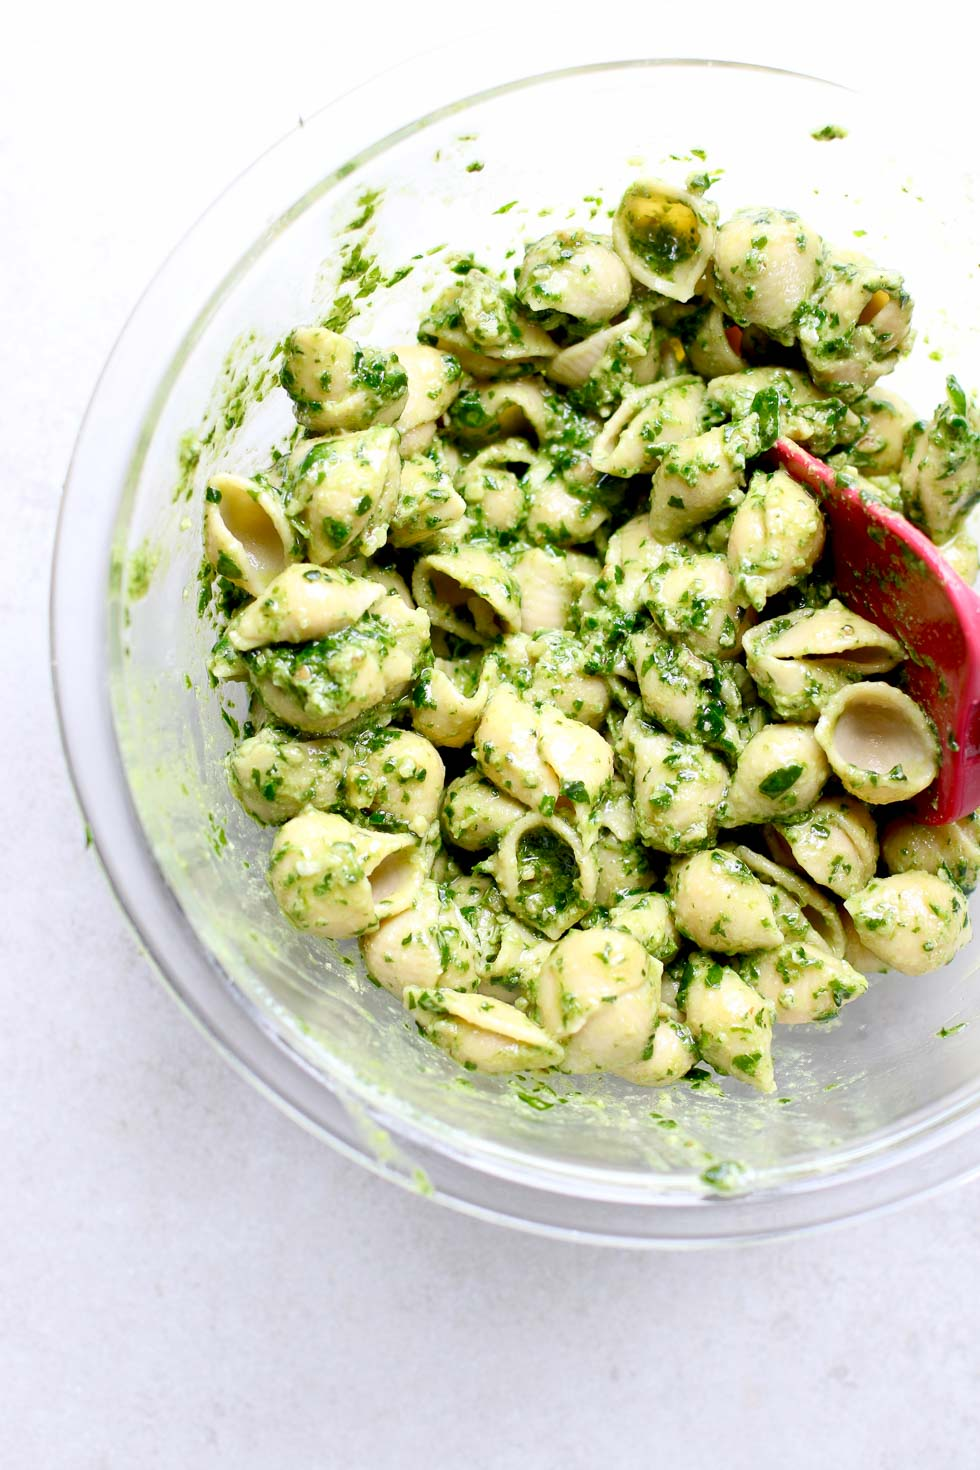 Mixing Chickpea Pasta with Walnut Pesto